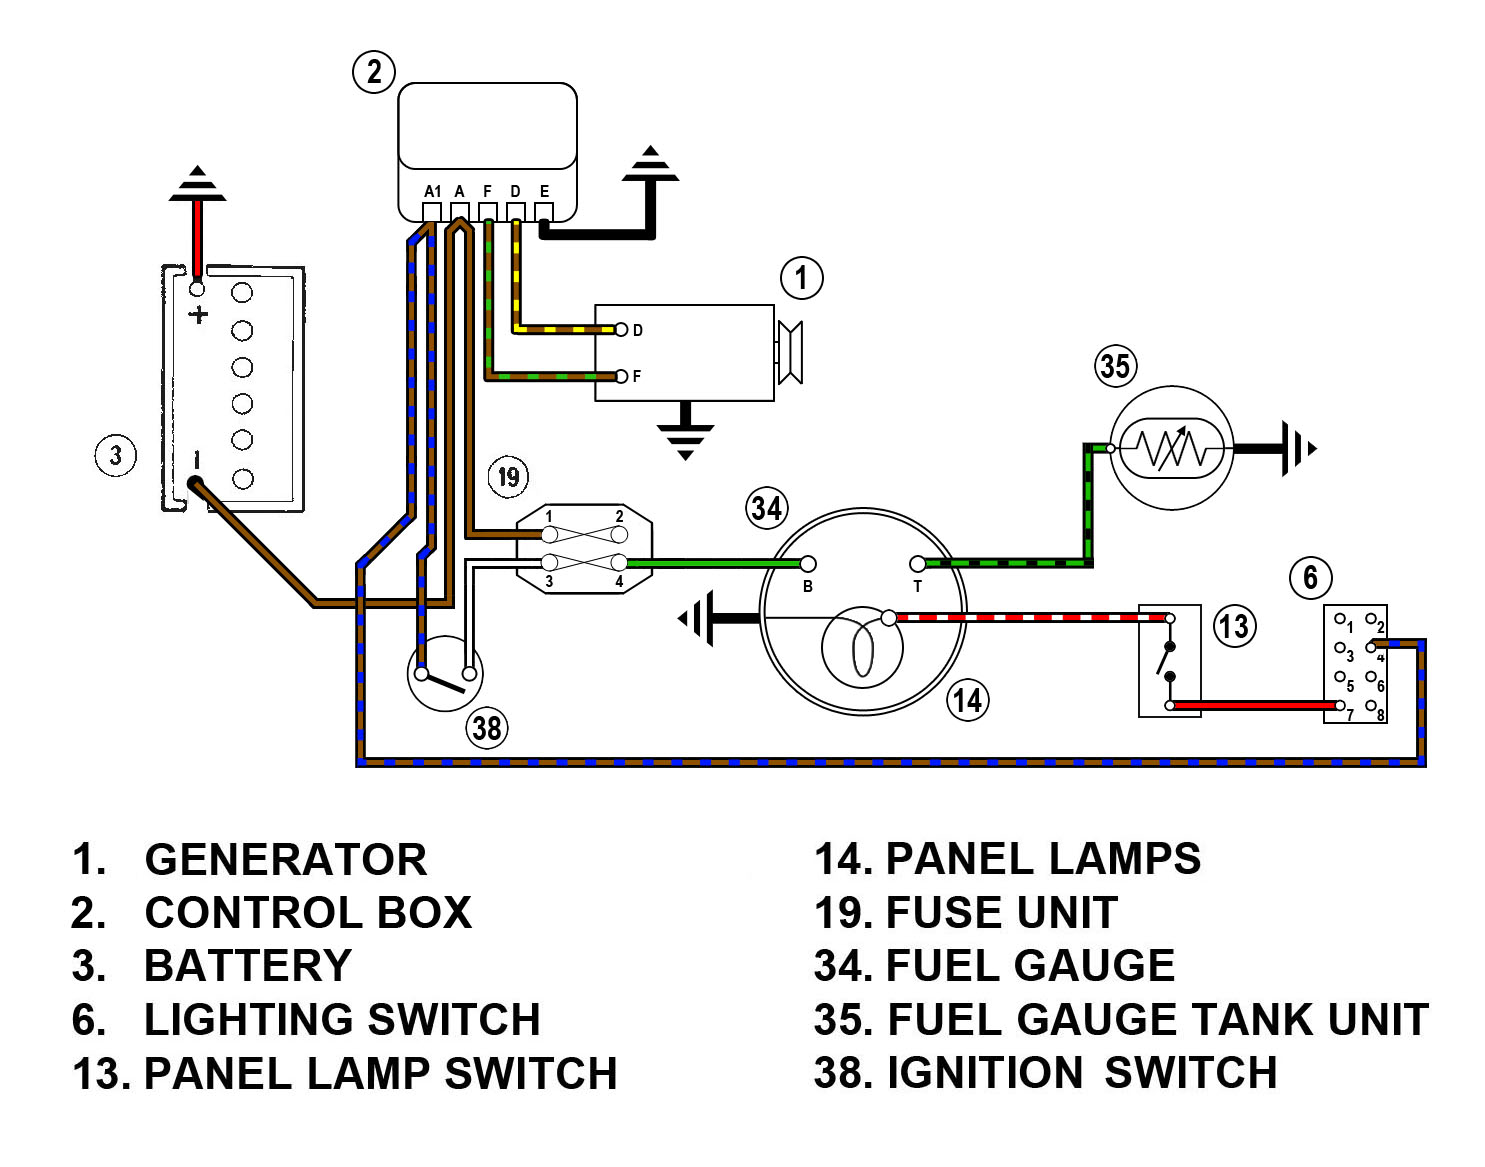 dolphin fuel gauge wiring diagram 1993 ford ranger ignition 2000 gmc yukon diagram, 2000, free engine image for user manual download